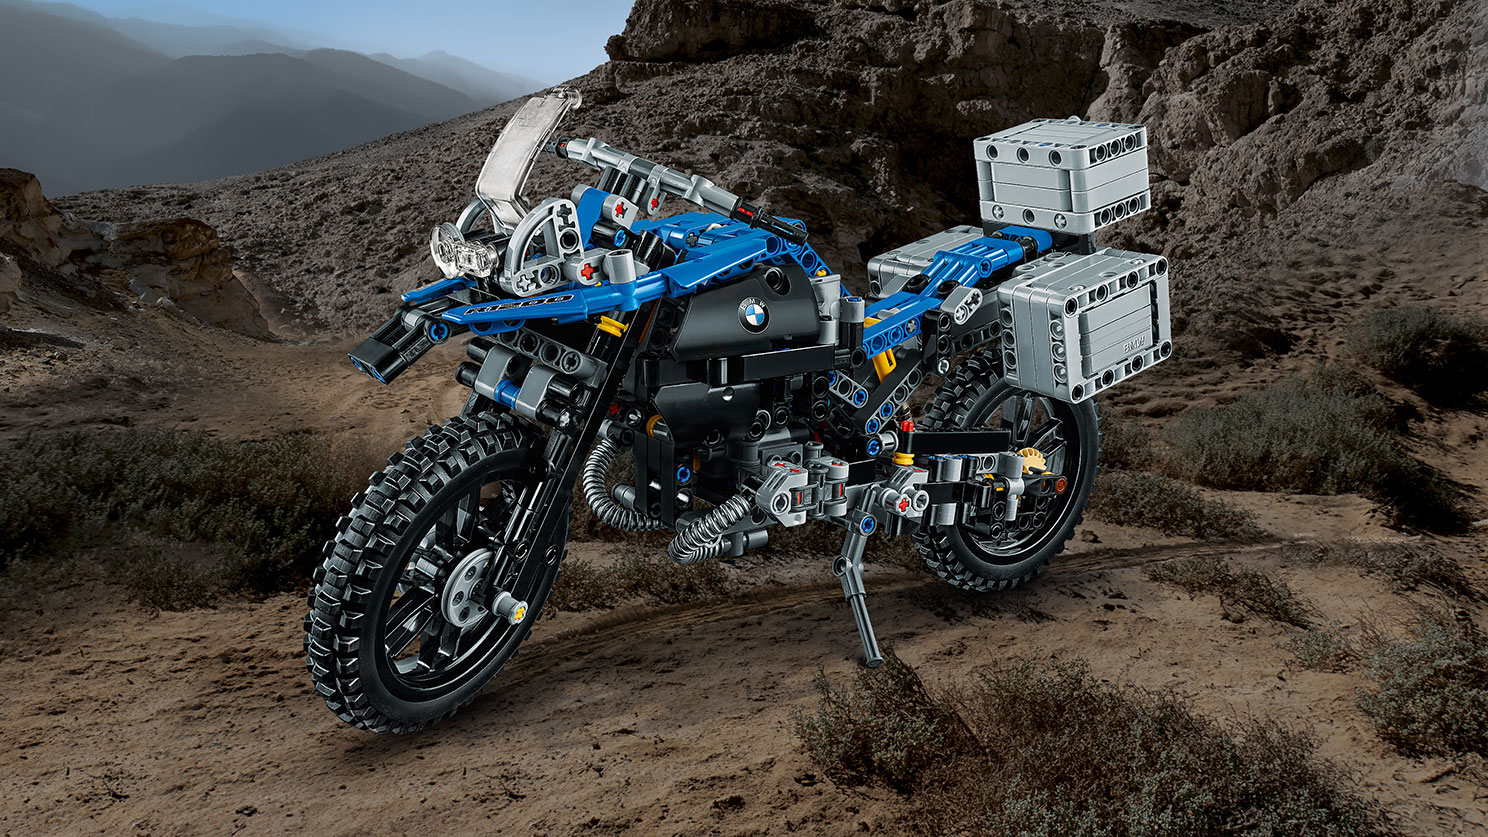 LEGO Technic - 42063 BMW R 1200 GS Adventure -  This detailed replica captures the iconic lines of the real-life machine and features a blue and black color scheme, handlebar steering, BMW Motorrad's unique telelever front suspension system, aerodynamic windshield and a detailed dashboard and exhaust.